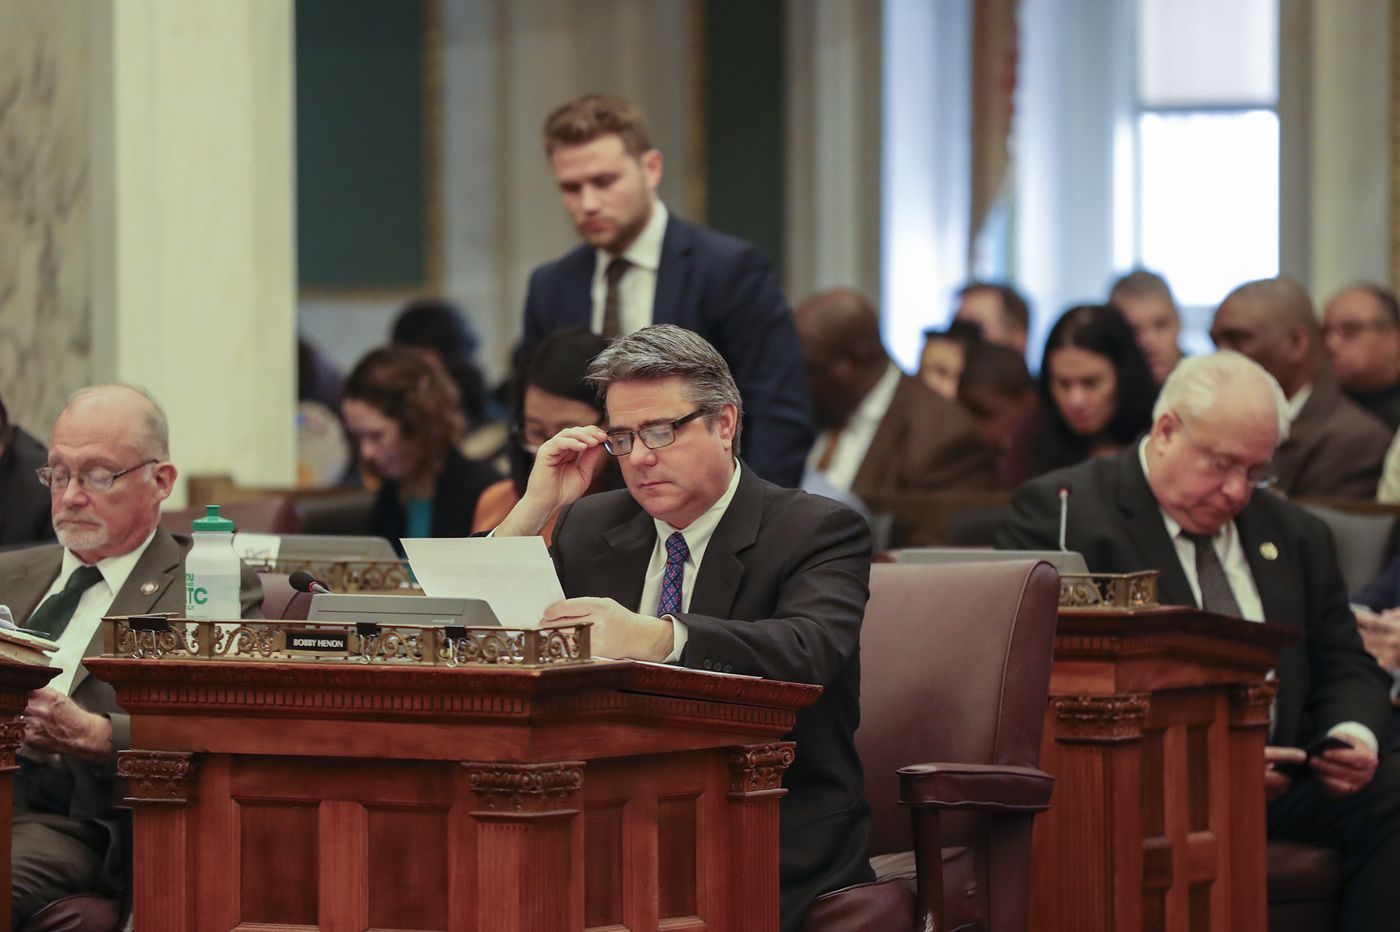 Philly Councilman Bobby Henon returns to work after indictment, won't step down as majority leader